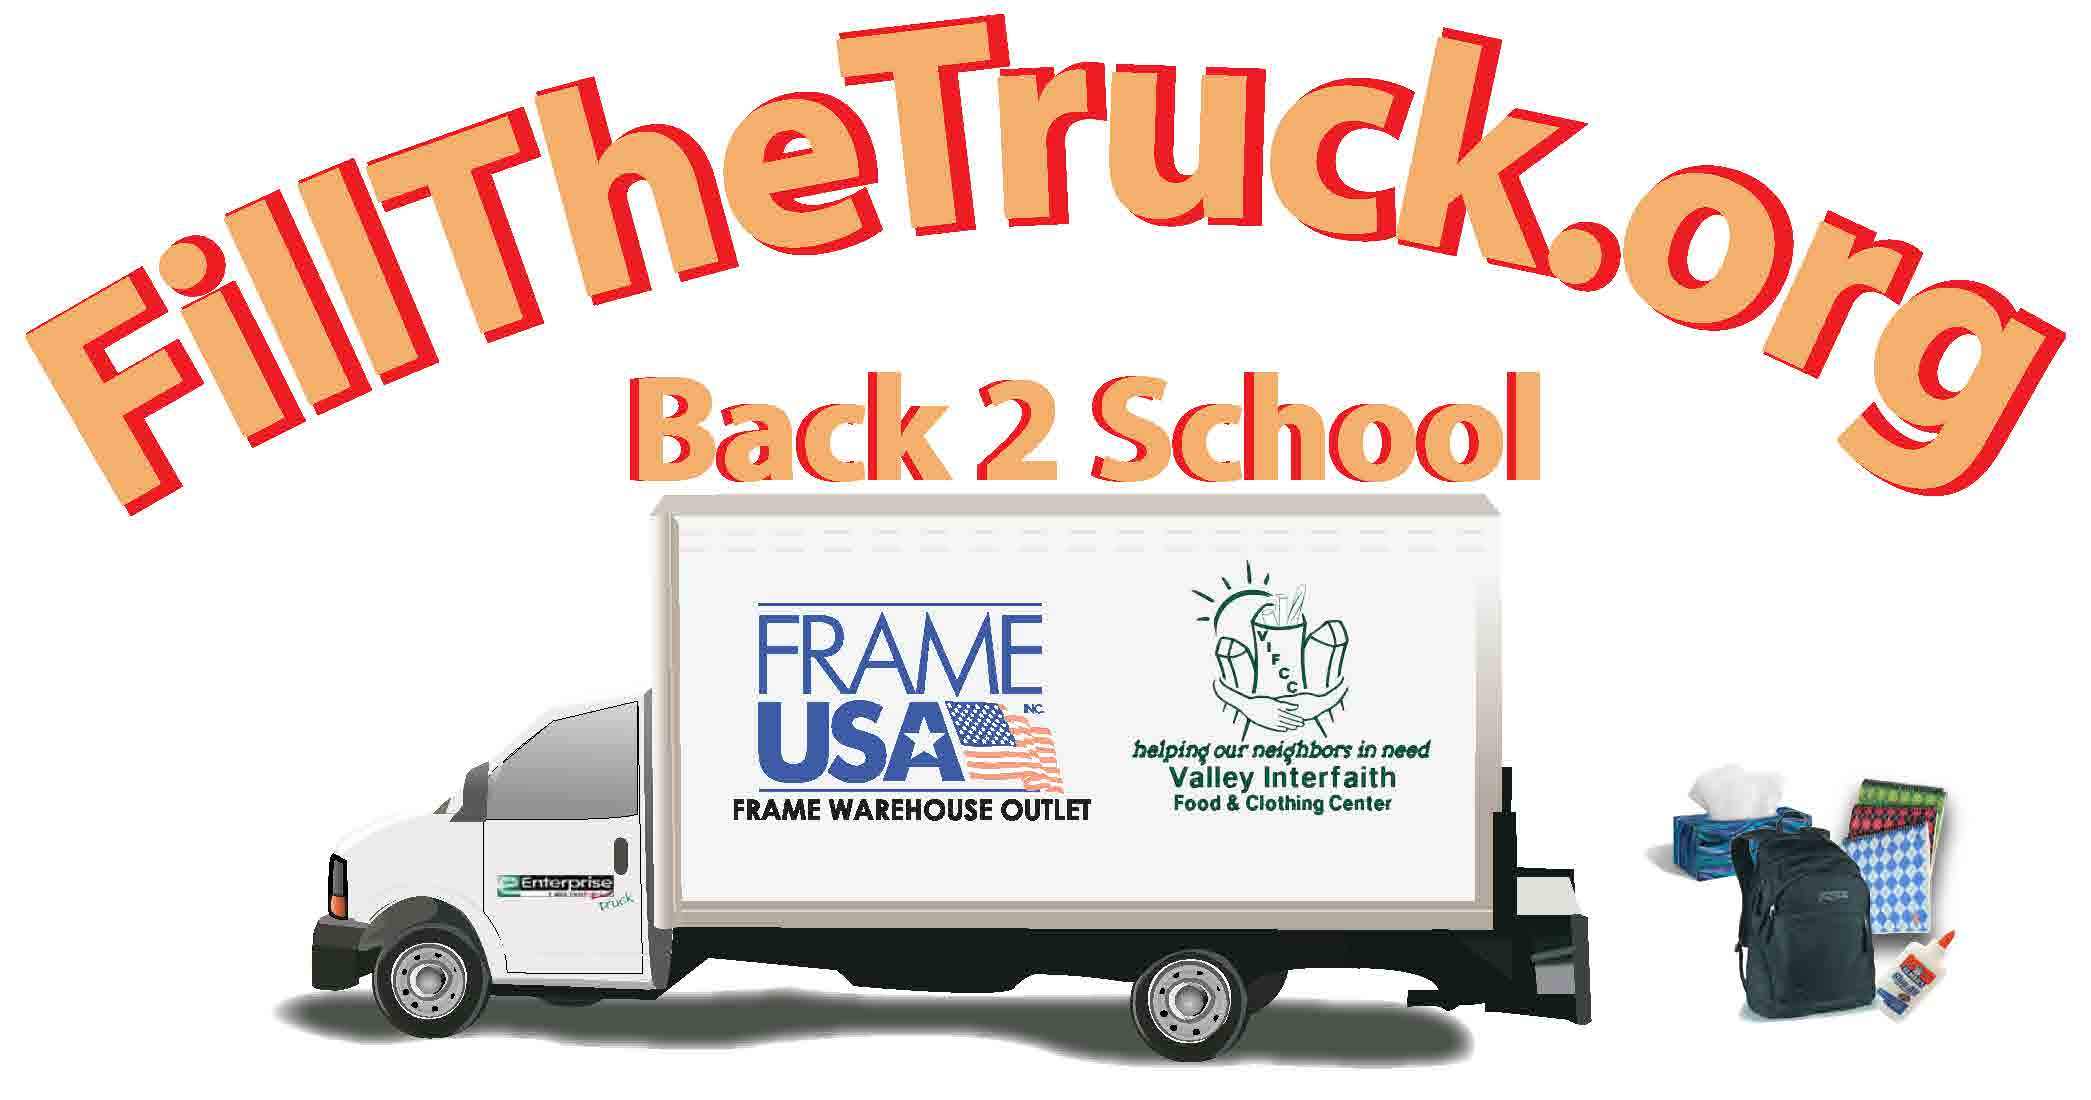 Fill the truck back to school logo